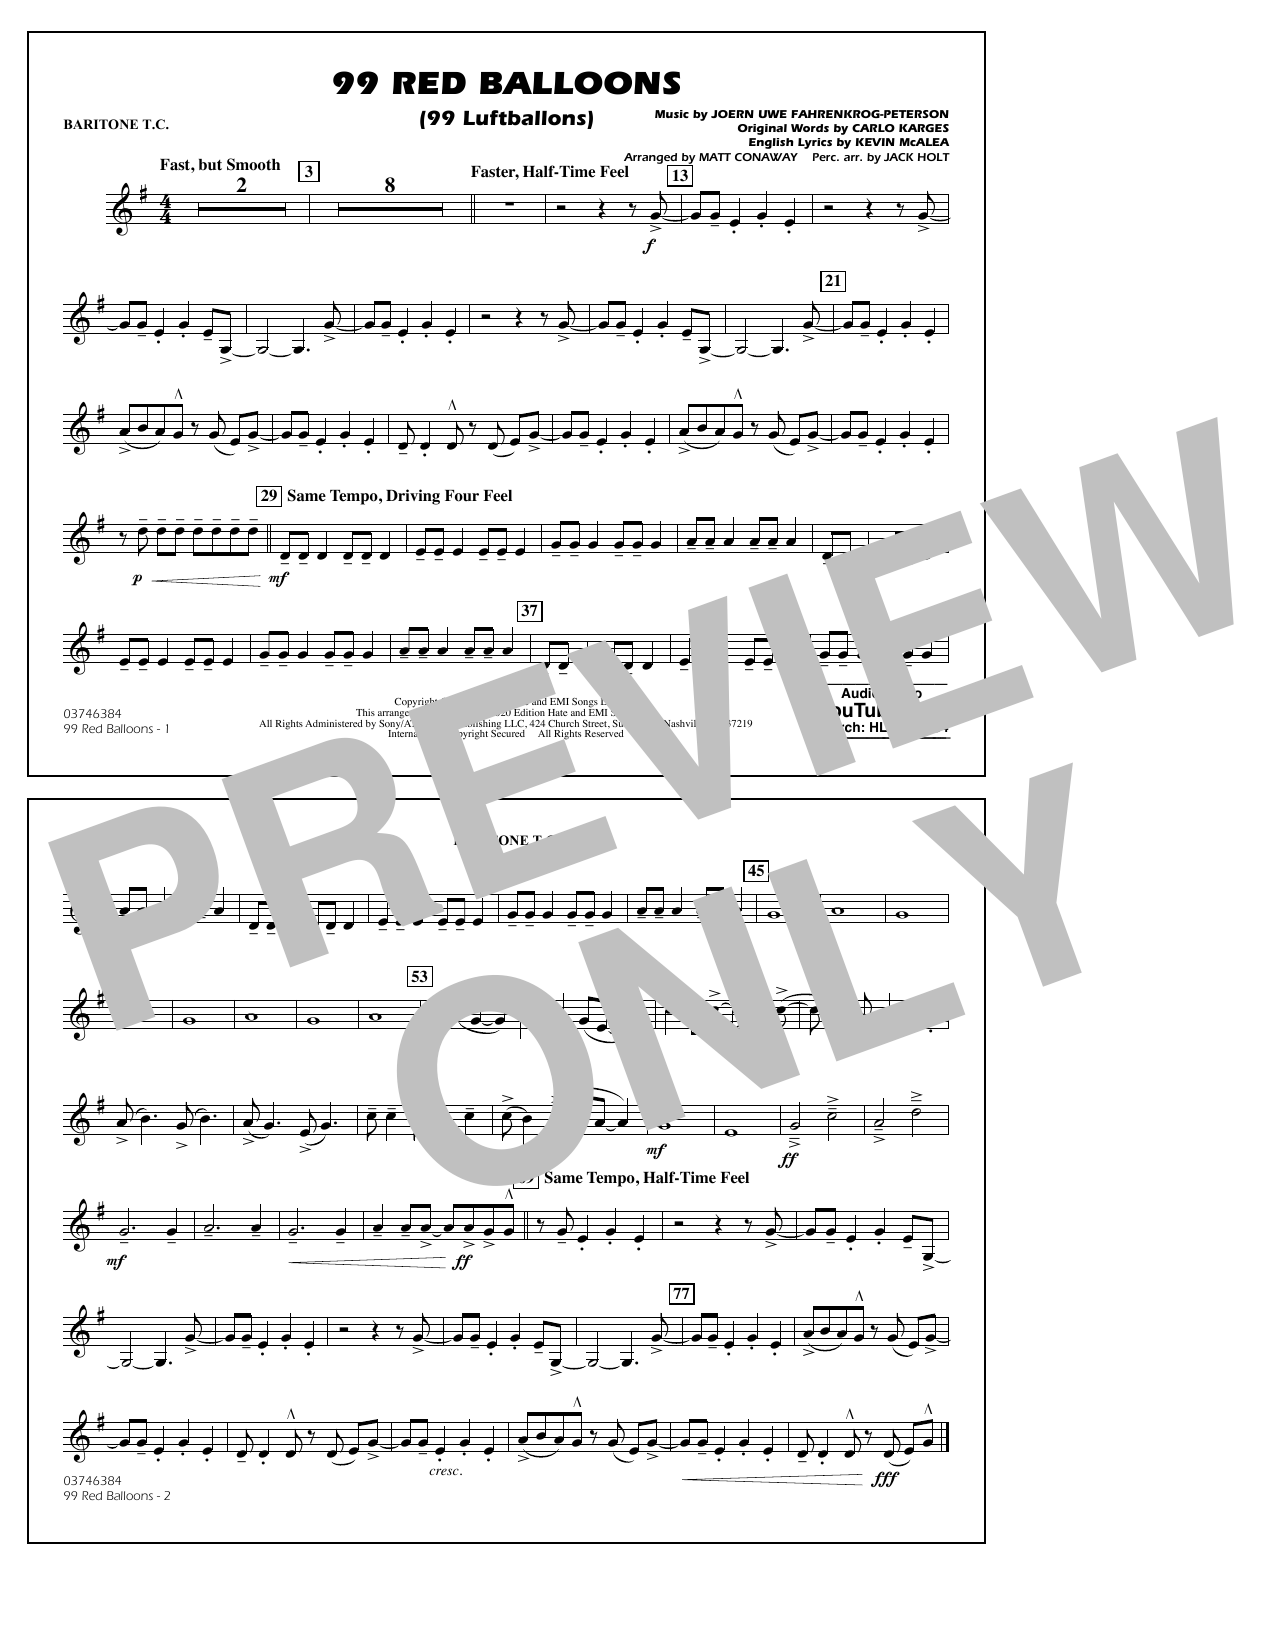 99 Red Balloons (arr. Holt and Conaway) - Baritone T.C. Sheet Music